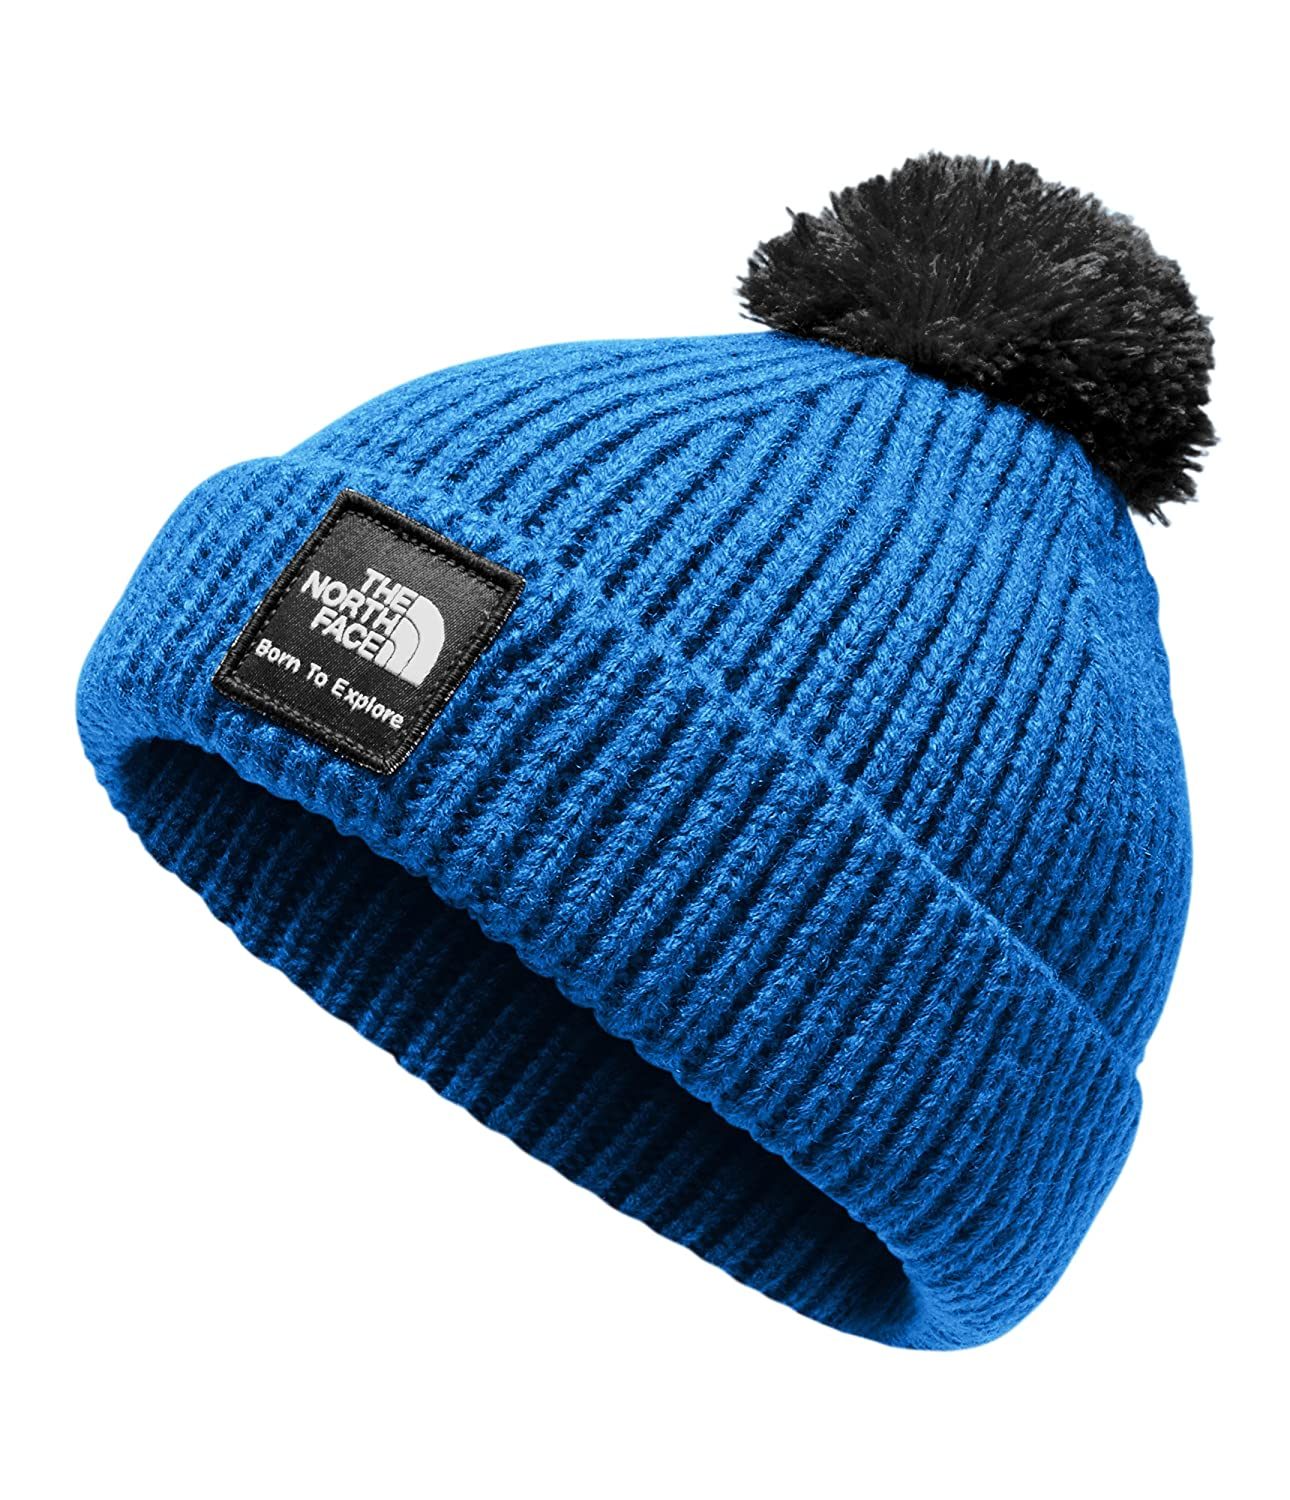 19bbba718 The North Face Baby Box Logo Pom Beanie